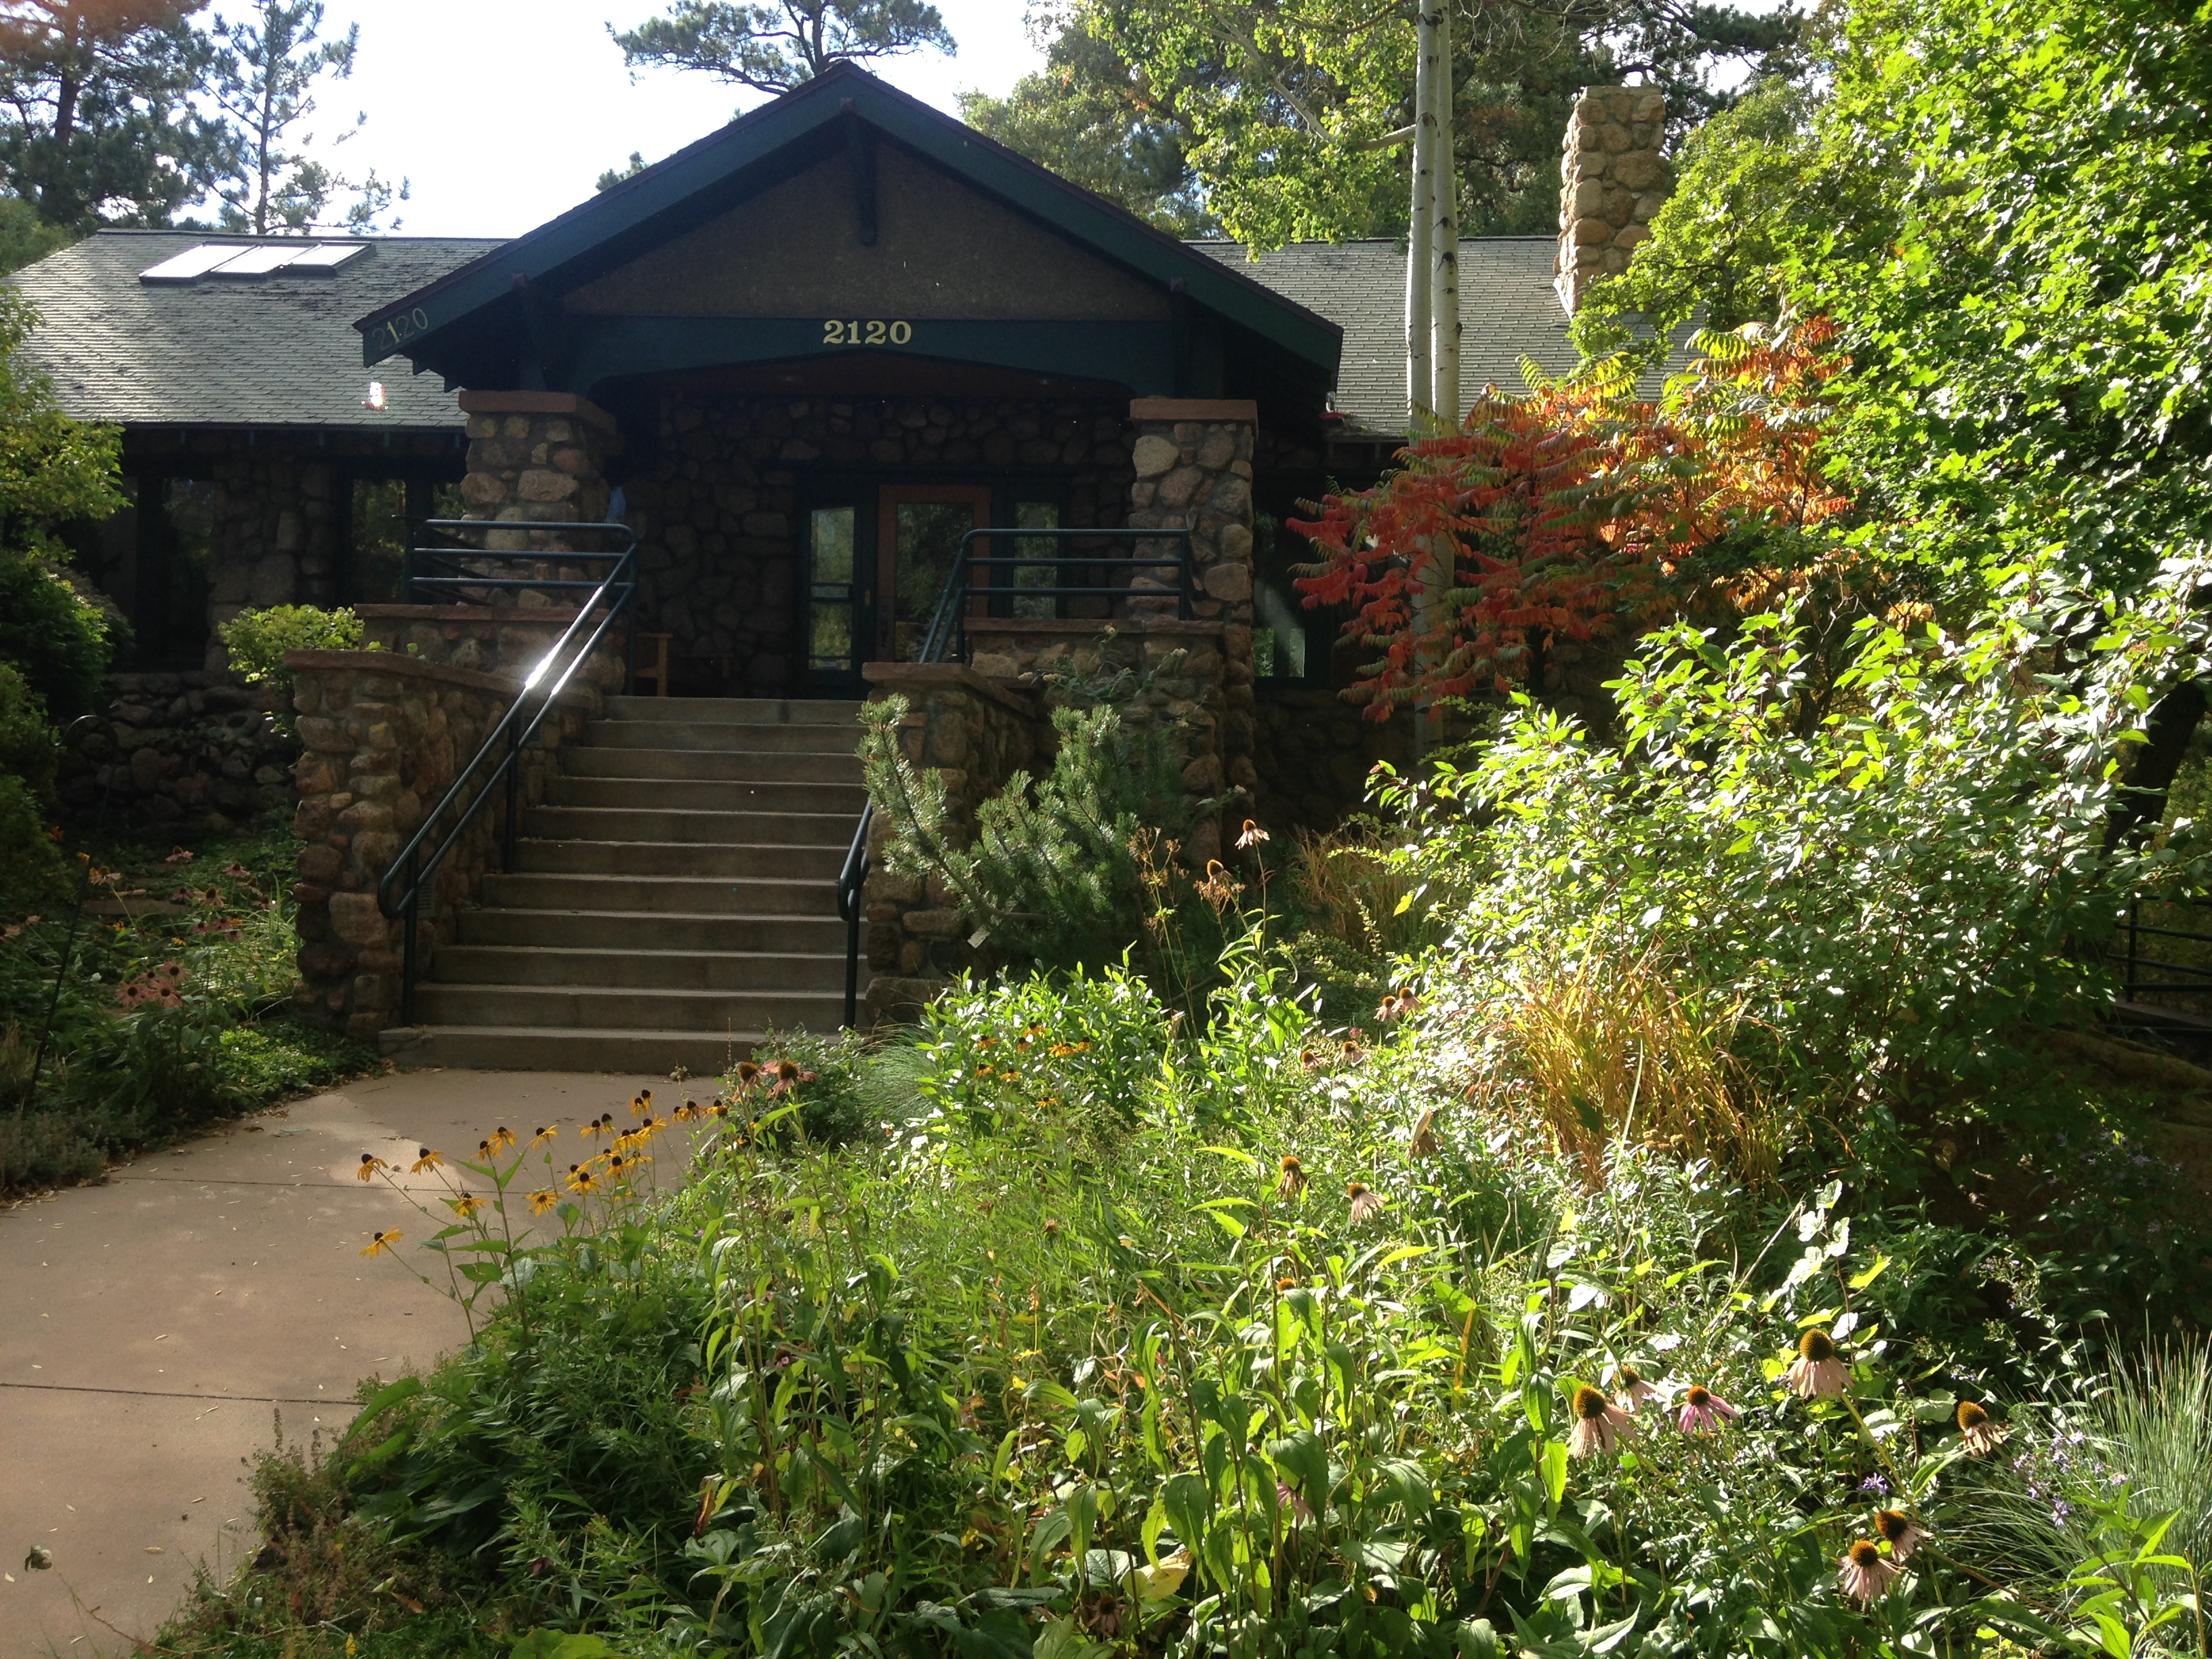 Starsmore Discovery Center is housed in a log cabin surrounded by greenery at North Cheyenne Canyon Park